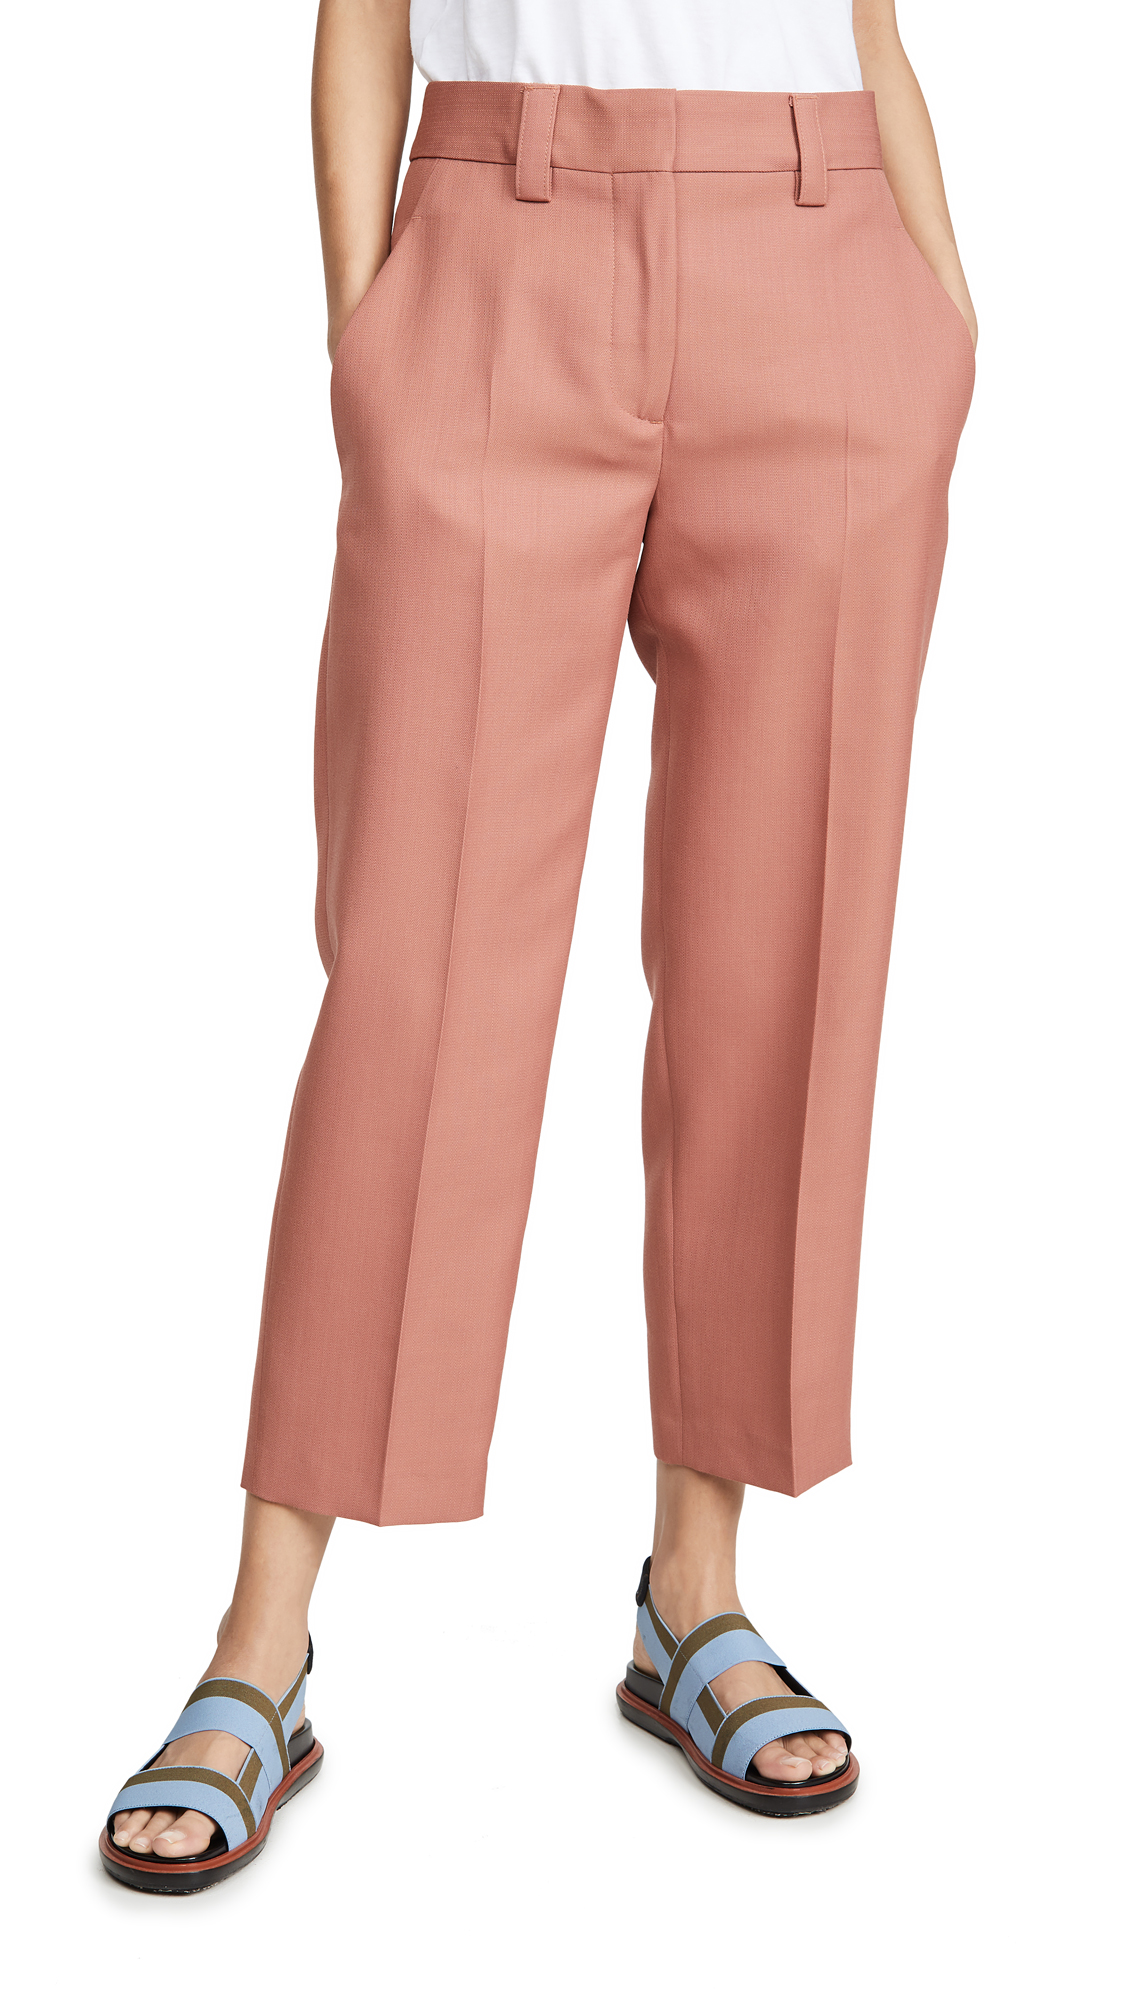 Acne Studios Suiting Trousers - Coral Red